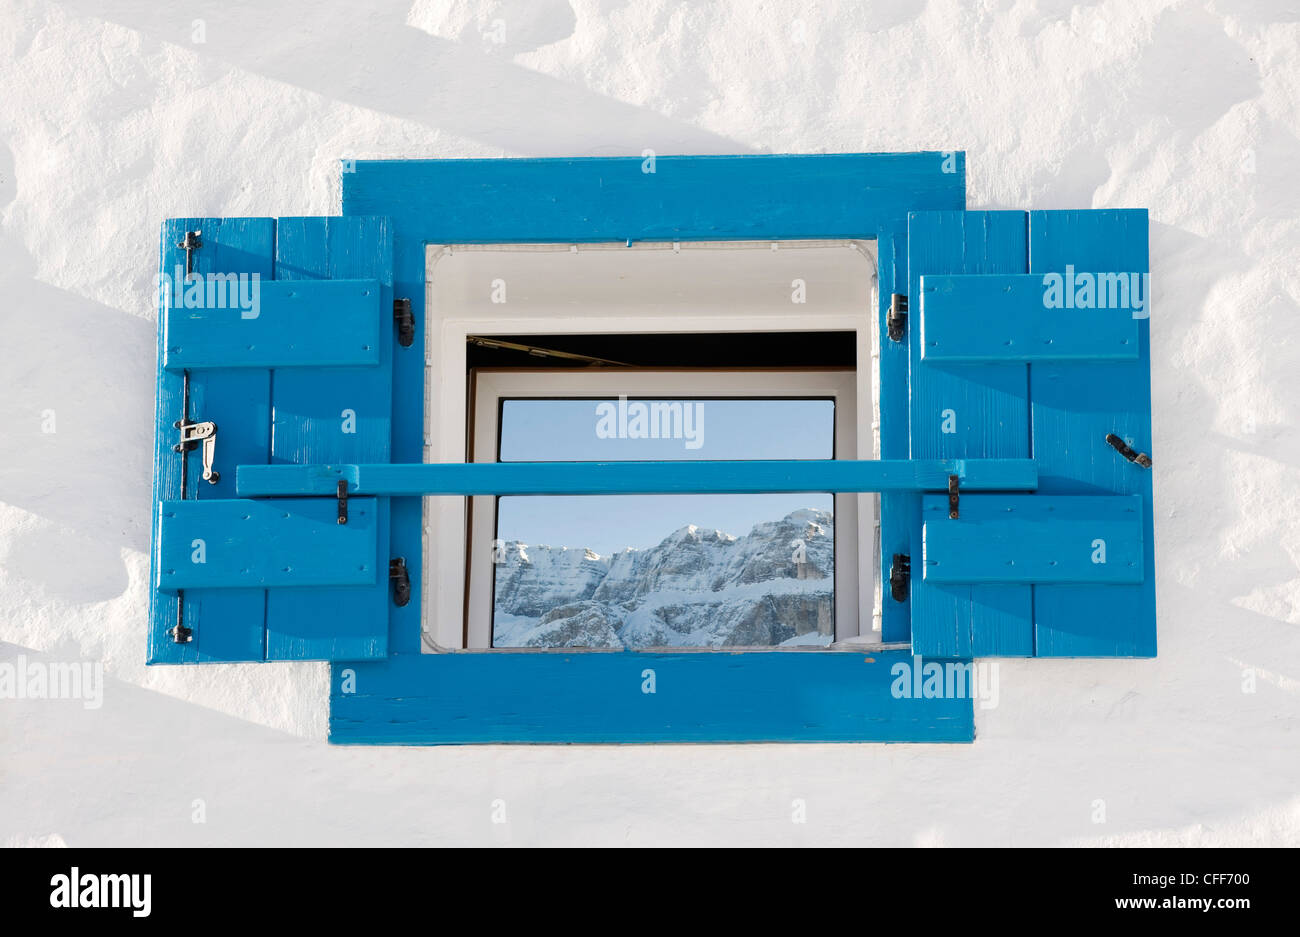 Reflection of snowy mountains on a window pane, Alto Adige, South Tyrol, Italy, Europe - Stock Image